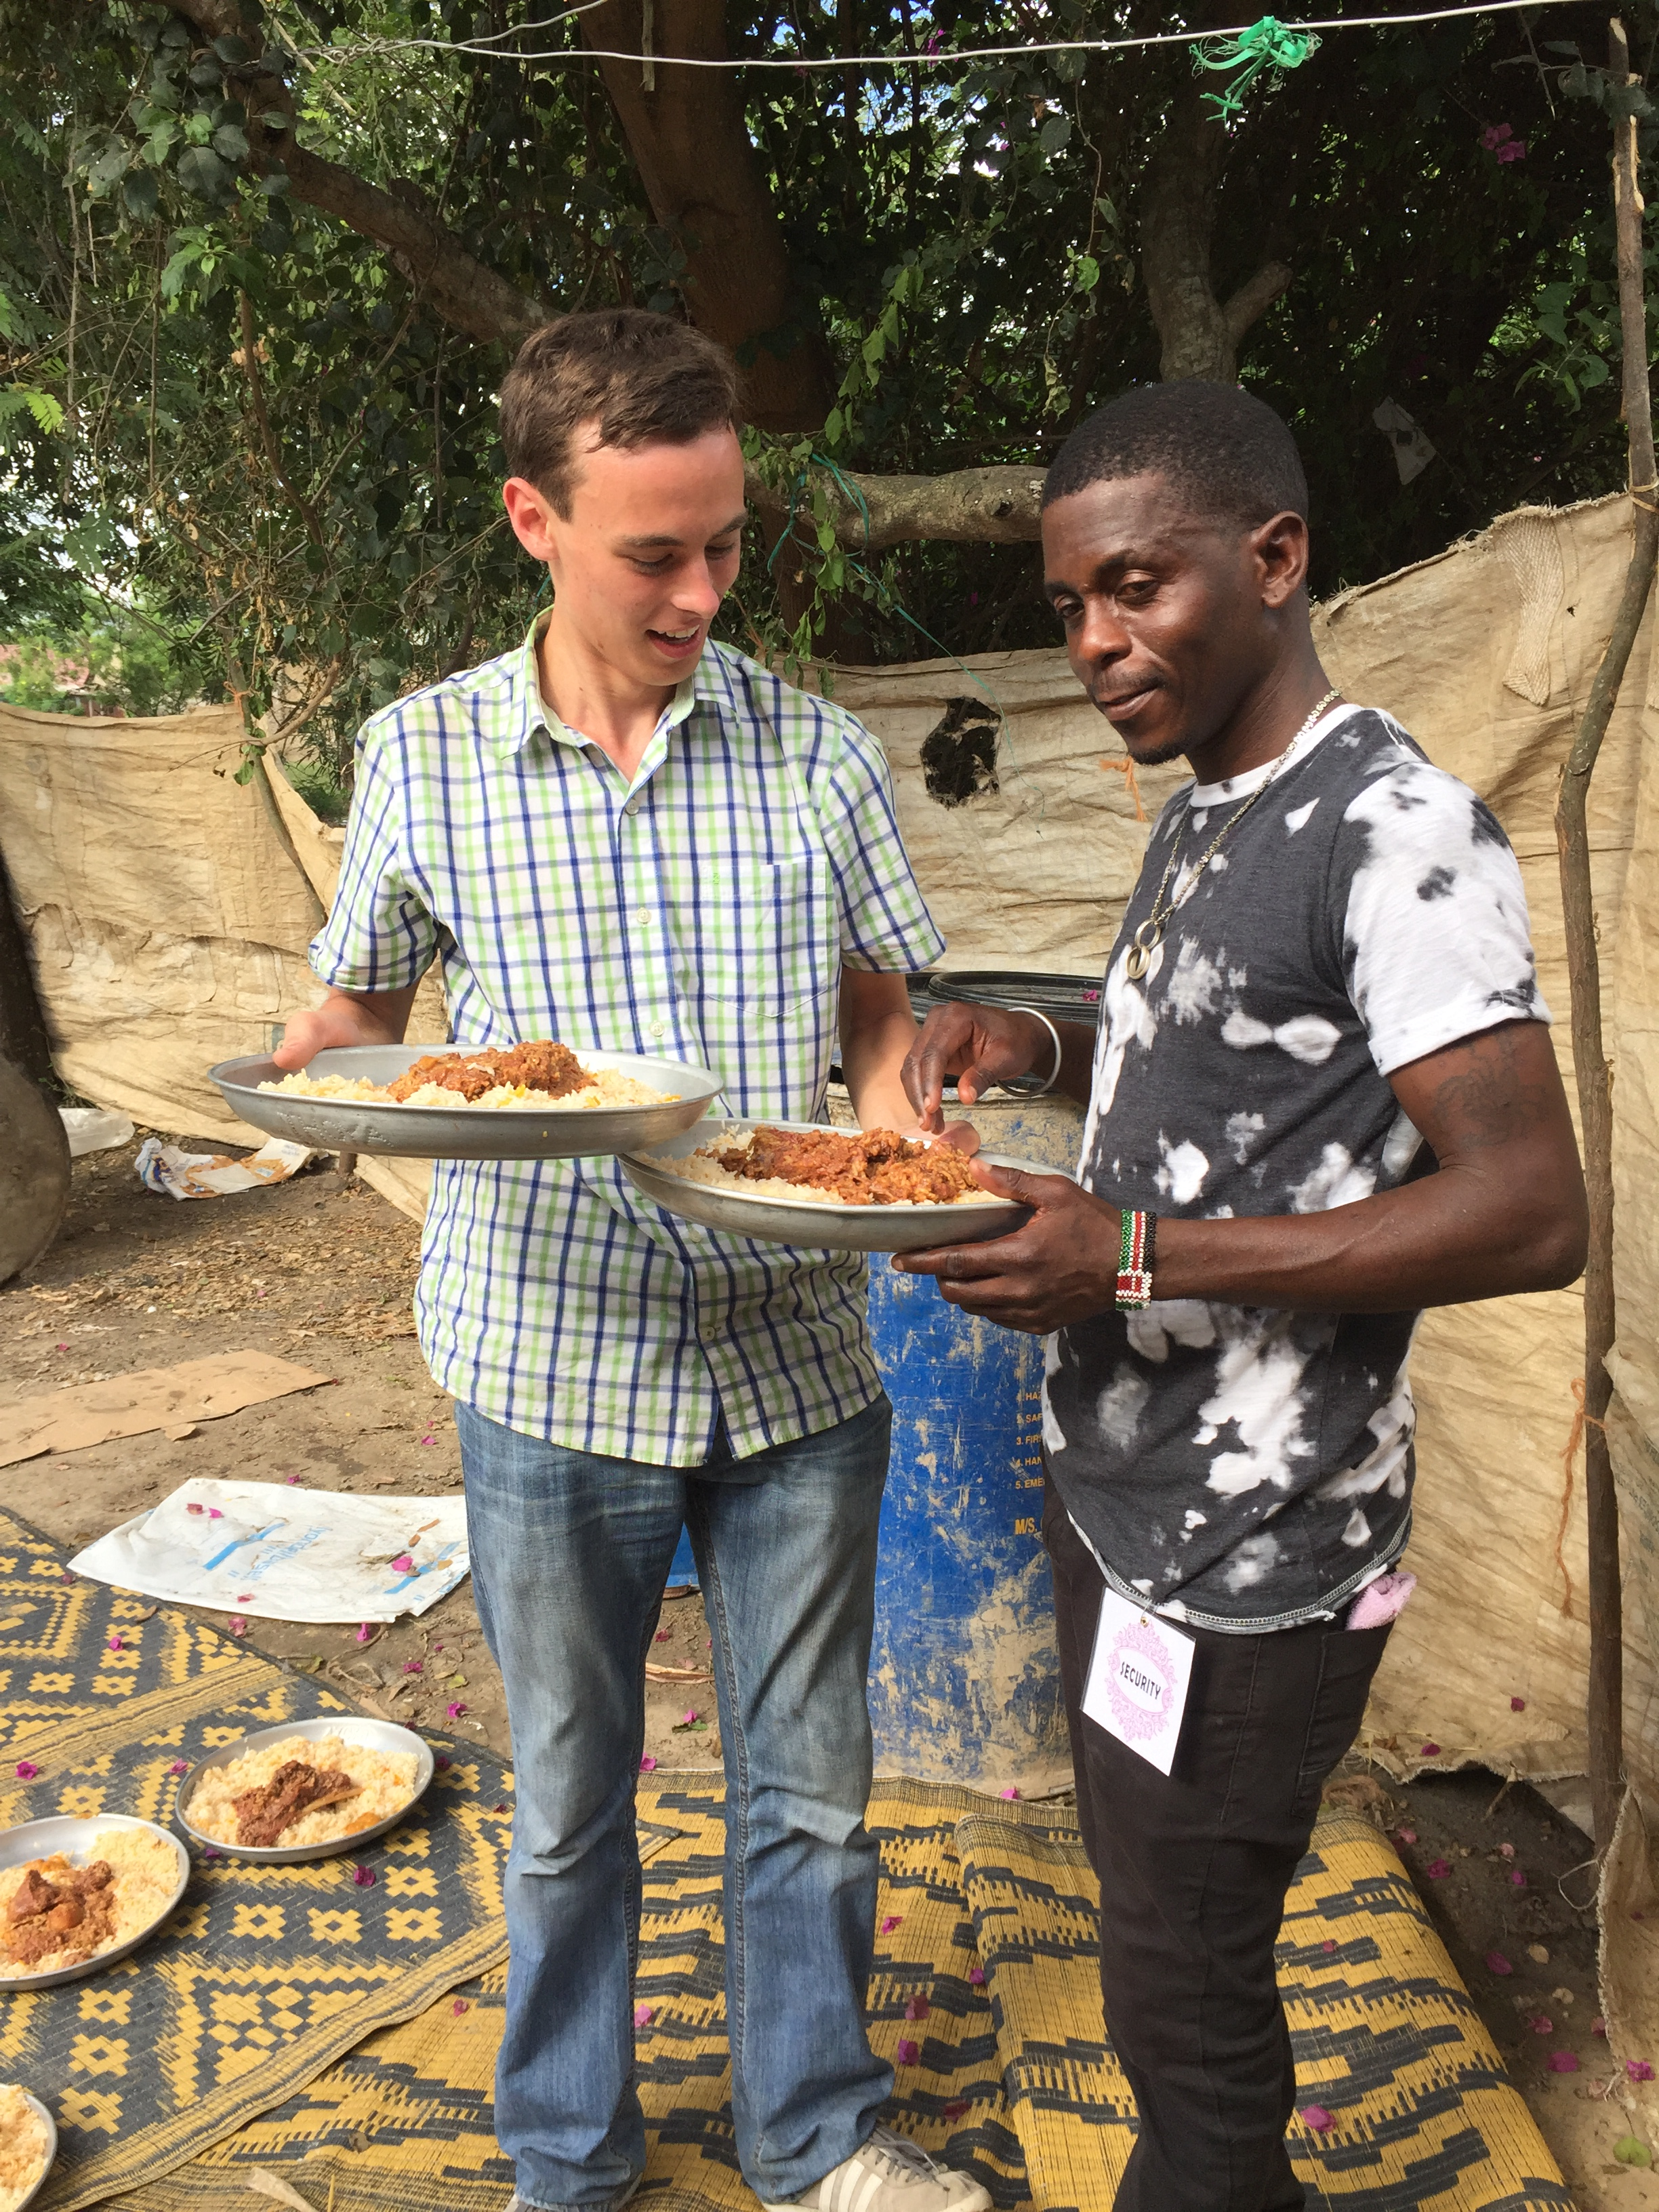 Dan holds two plates of biryani while another person feigns eating some